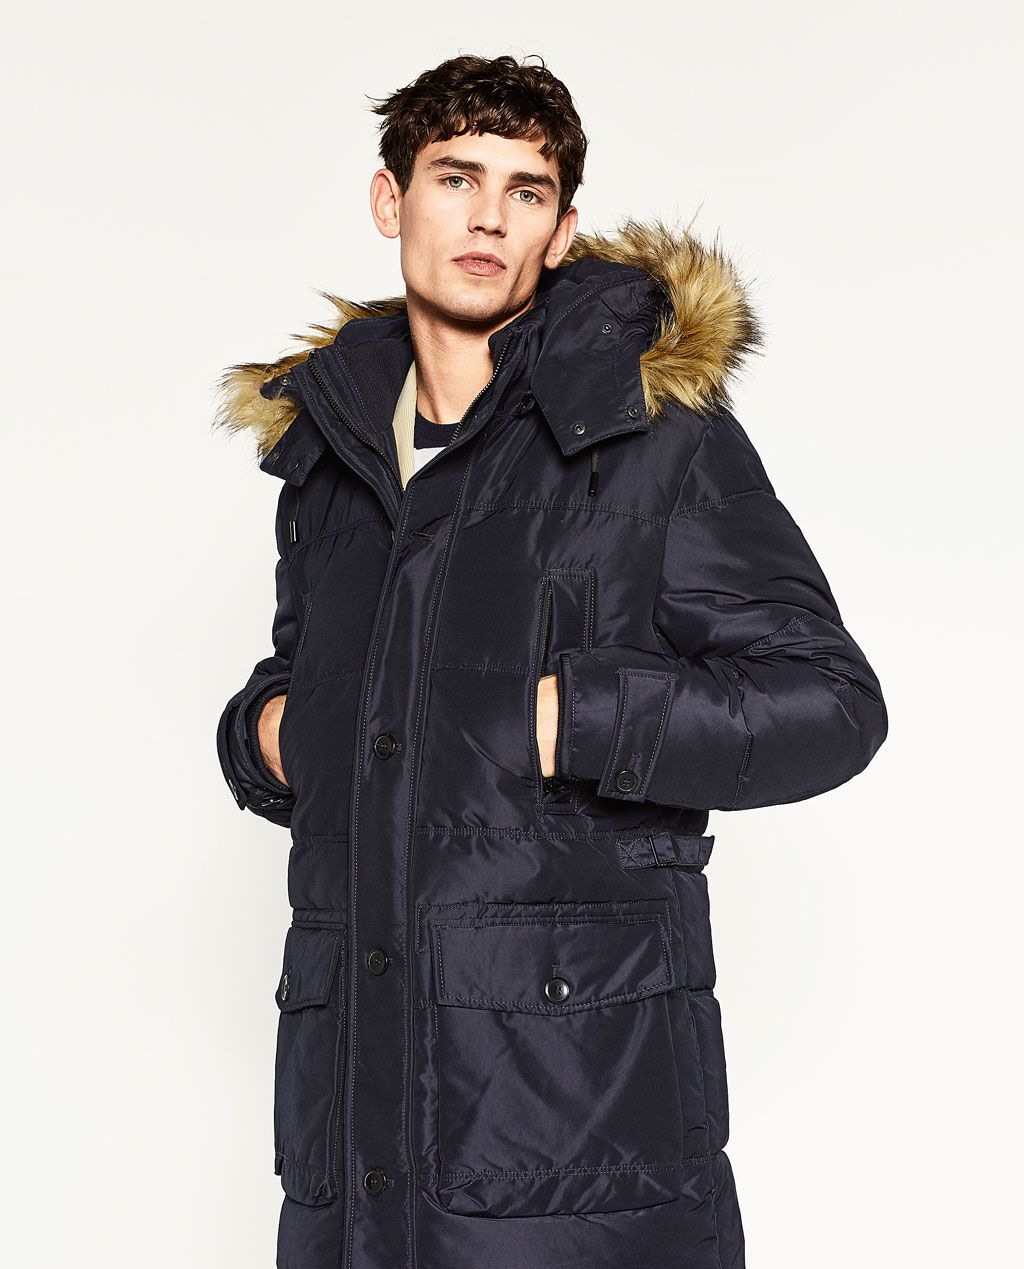 QUILTED PARKA | M E N ' S _ O U T T E R W E A R | Pinterest : quilted parkas - Adamdwight.com